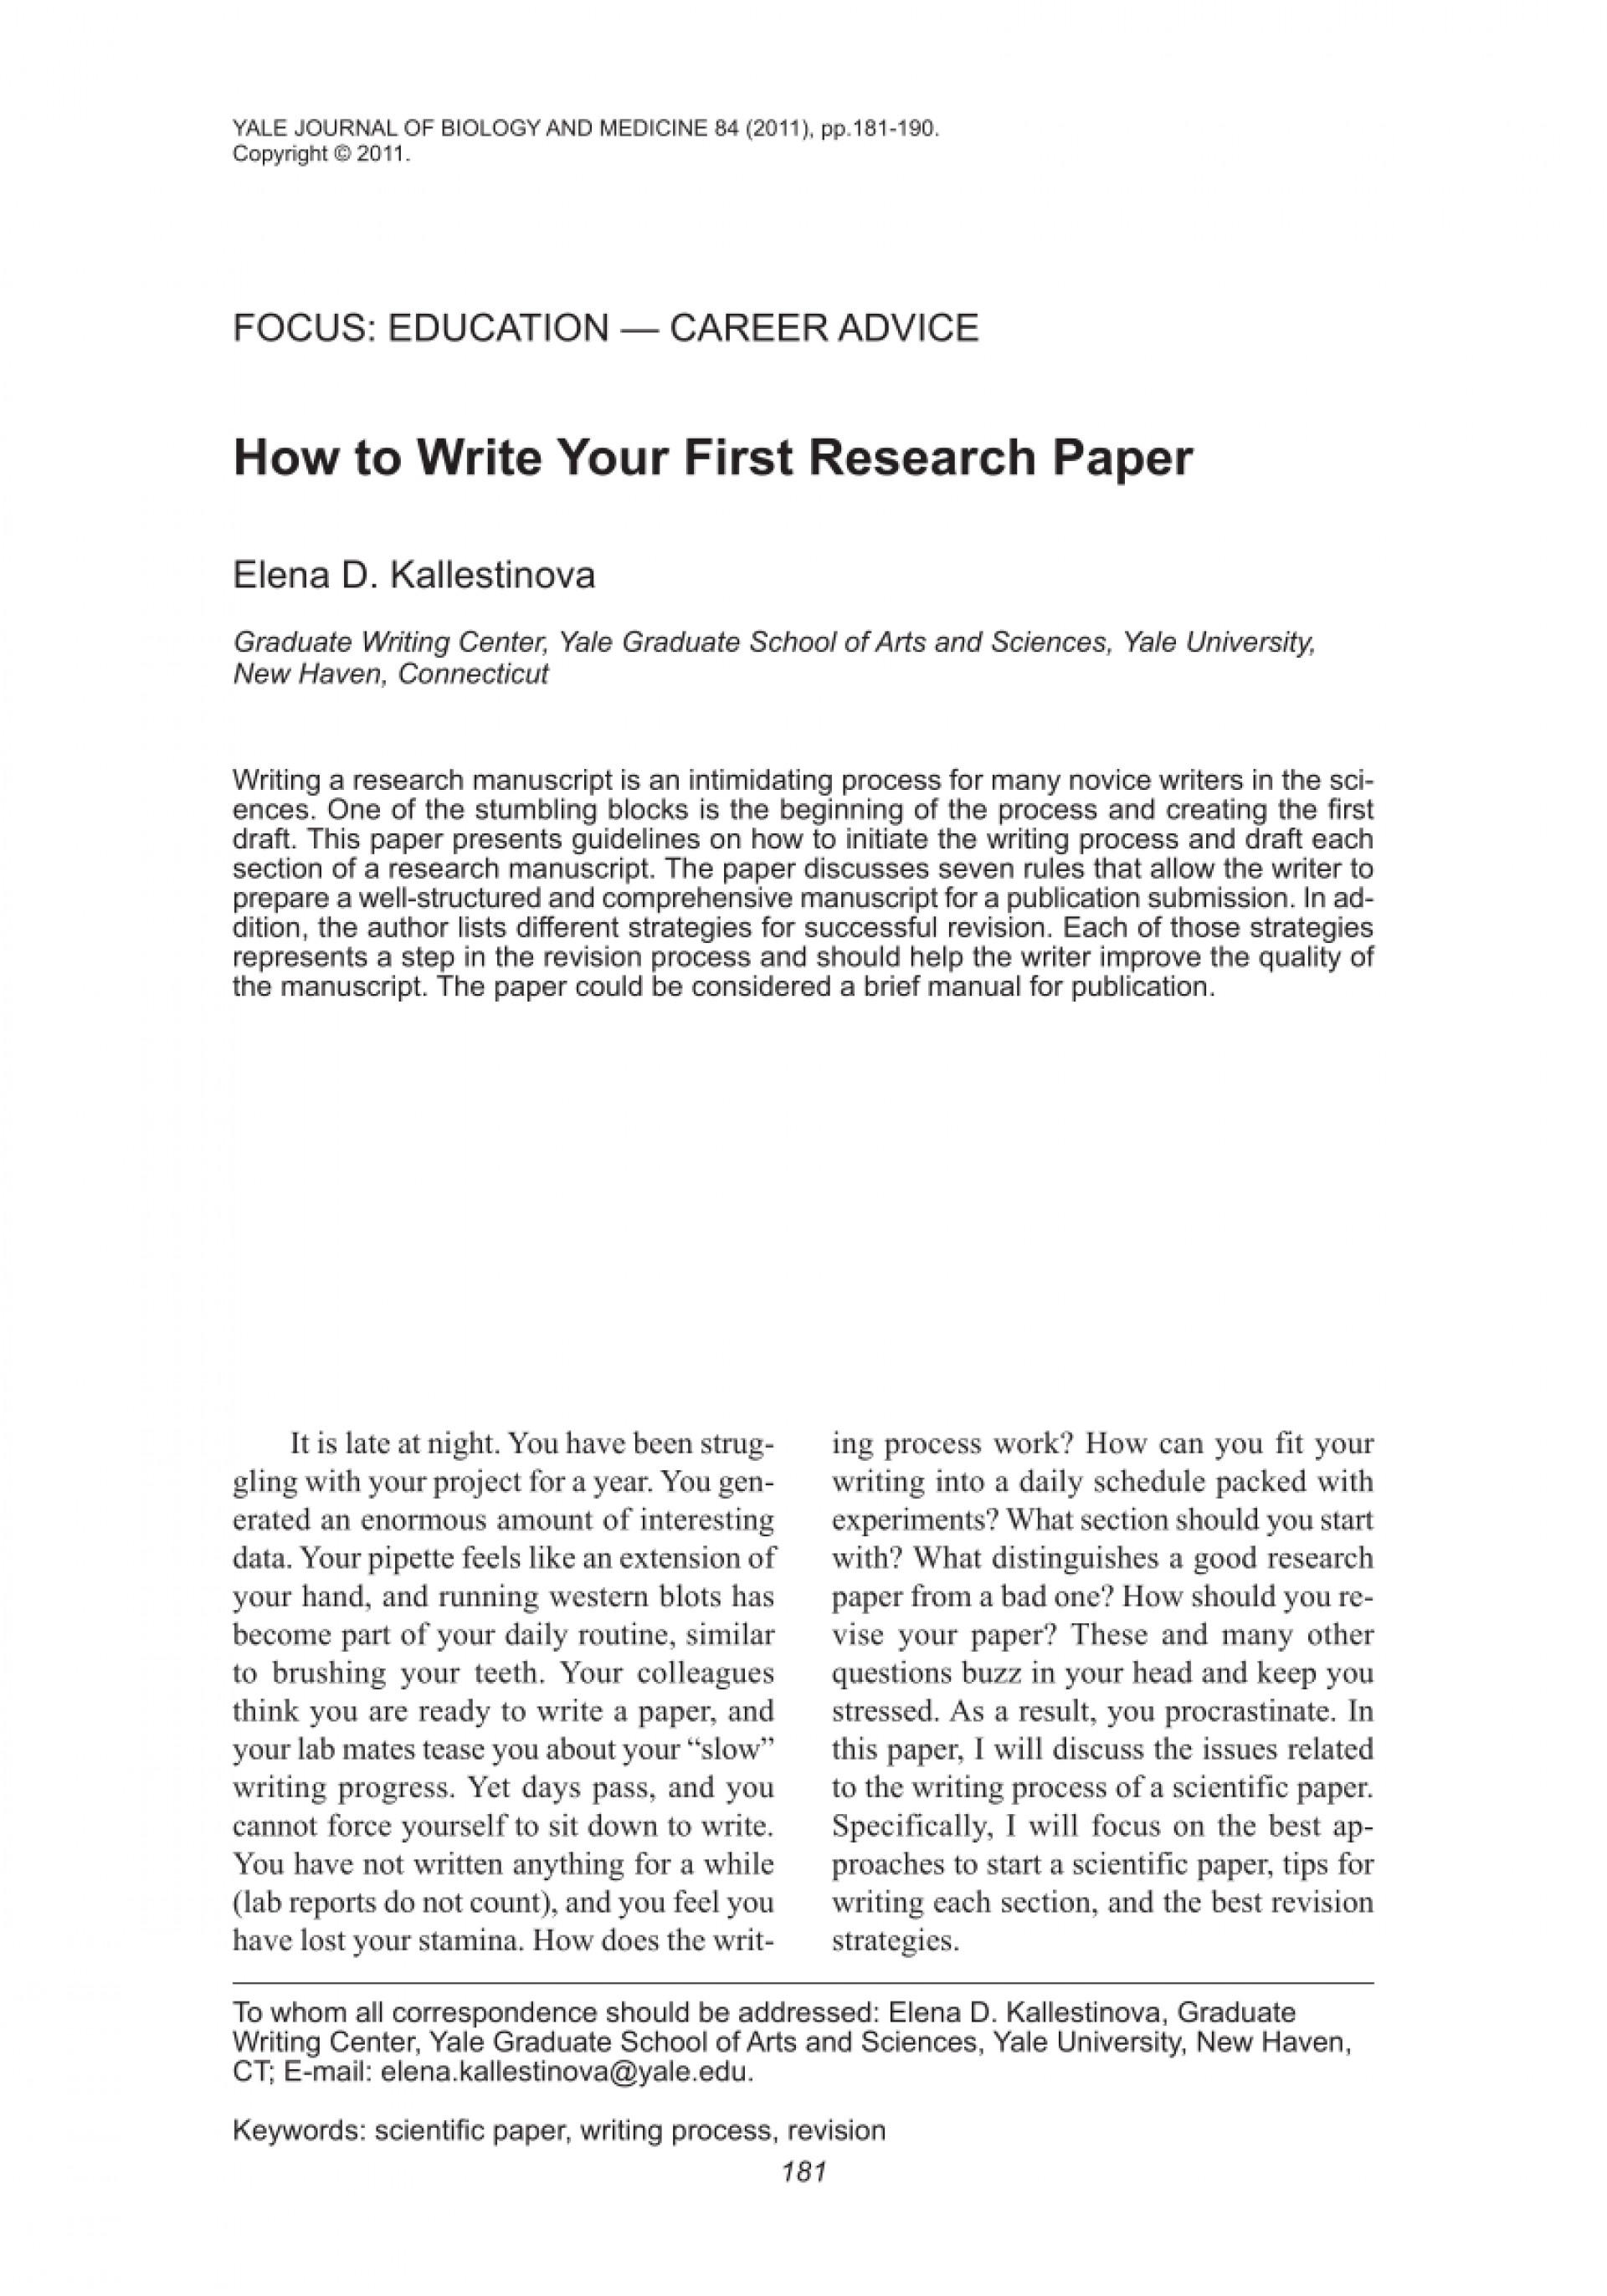 003 Write Research Paper Outstanding A Can You In Day How To 3 Page Fast For Me Free 1920